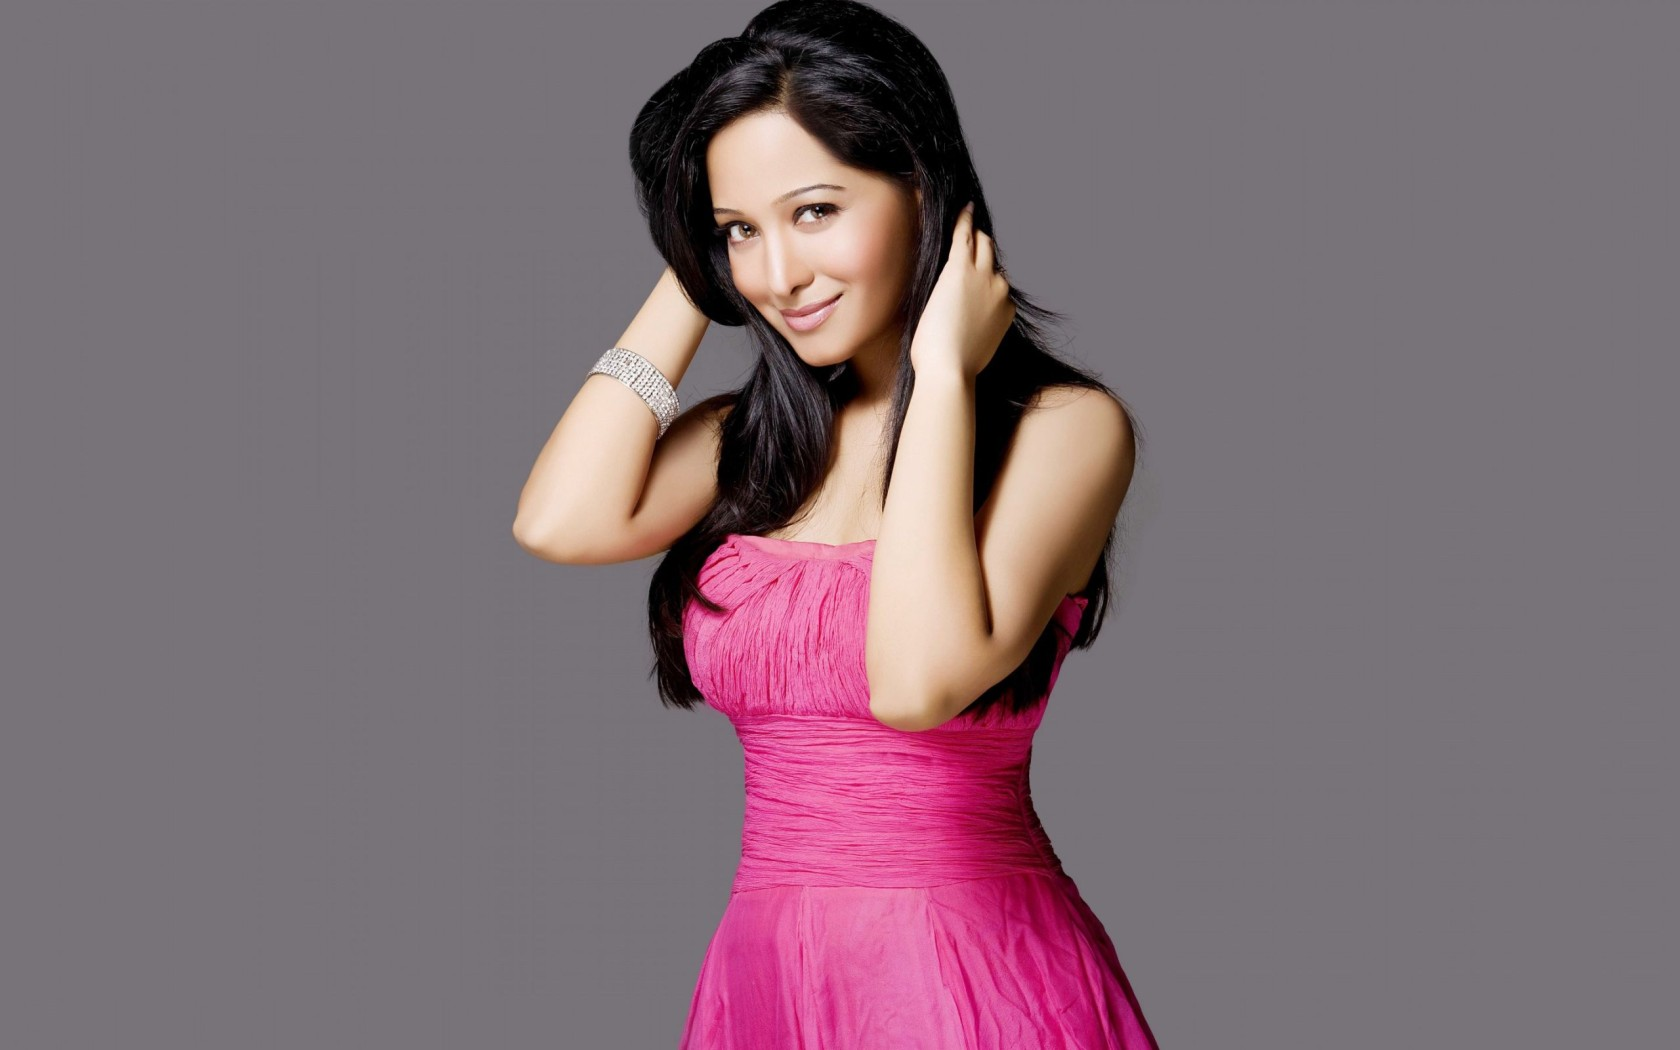 Preetika Rao Indian Model Girl Wallpaper